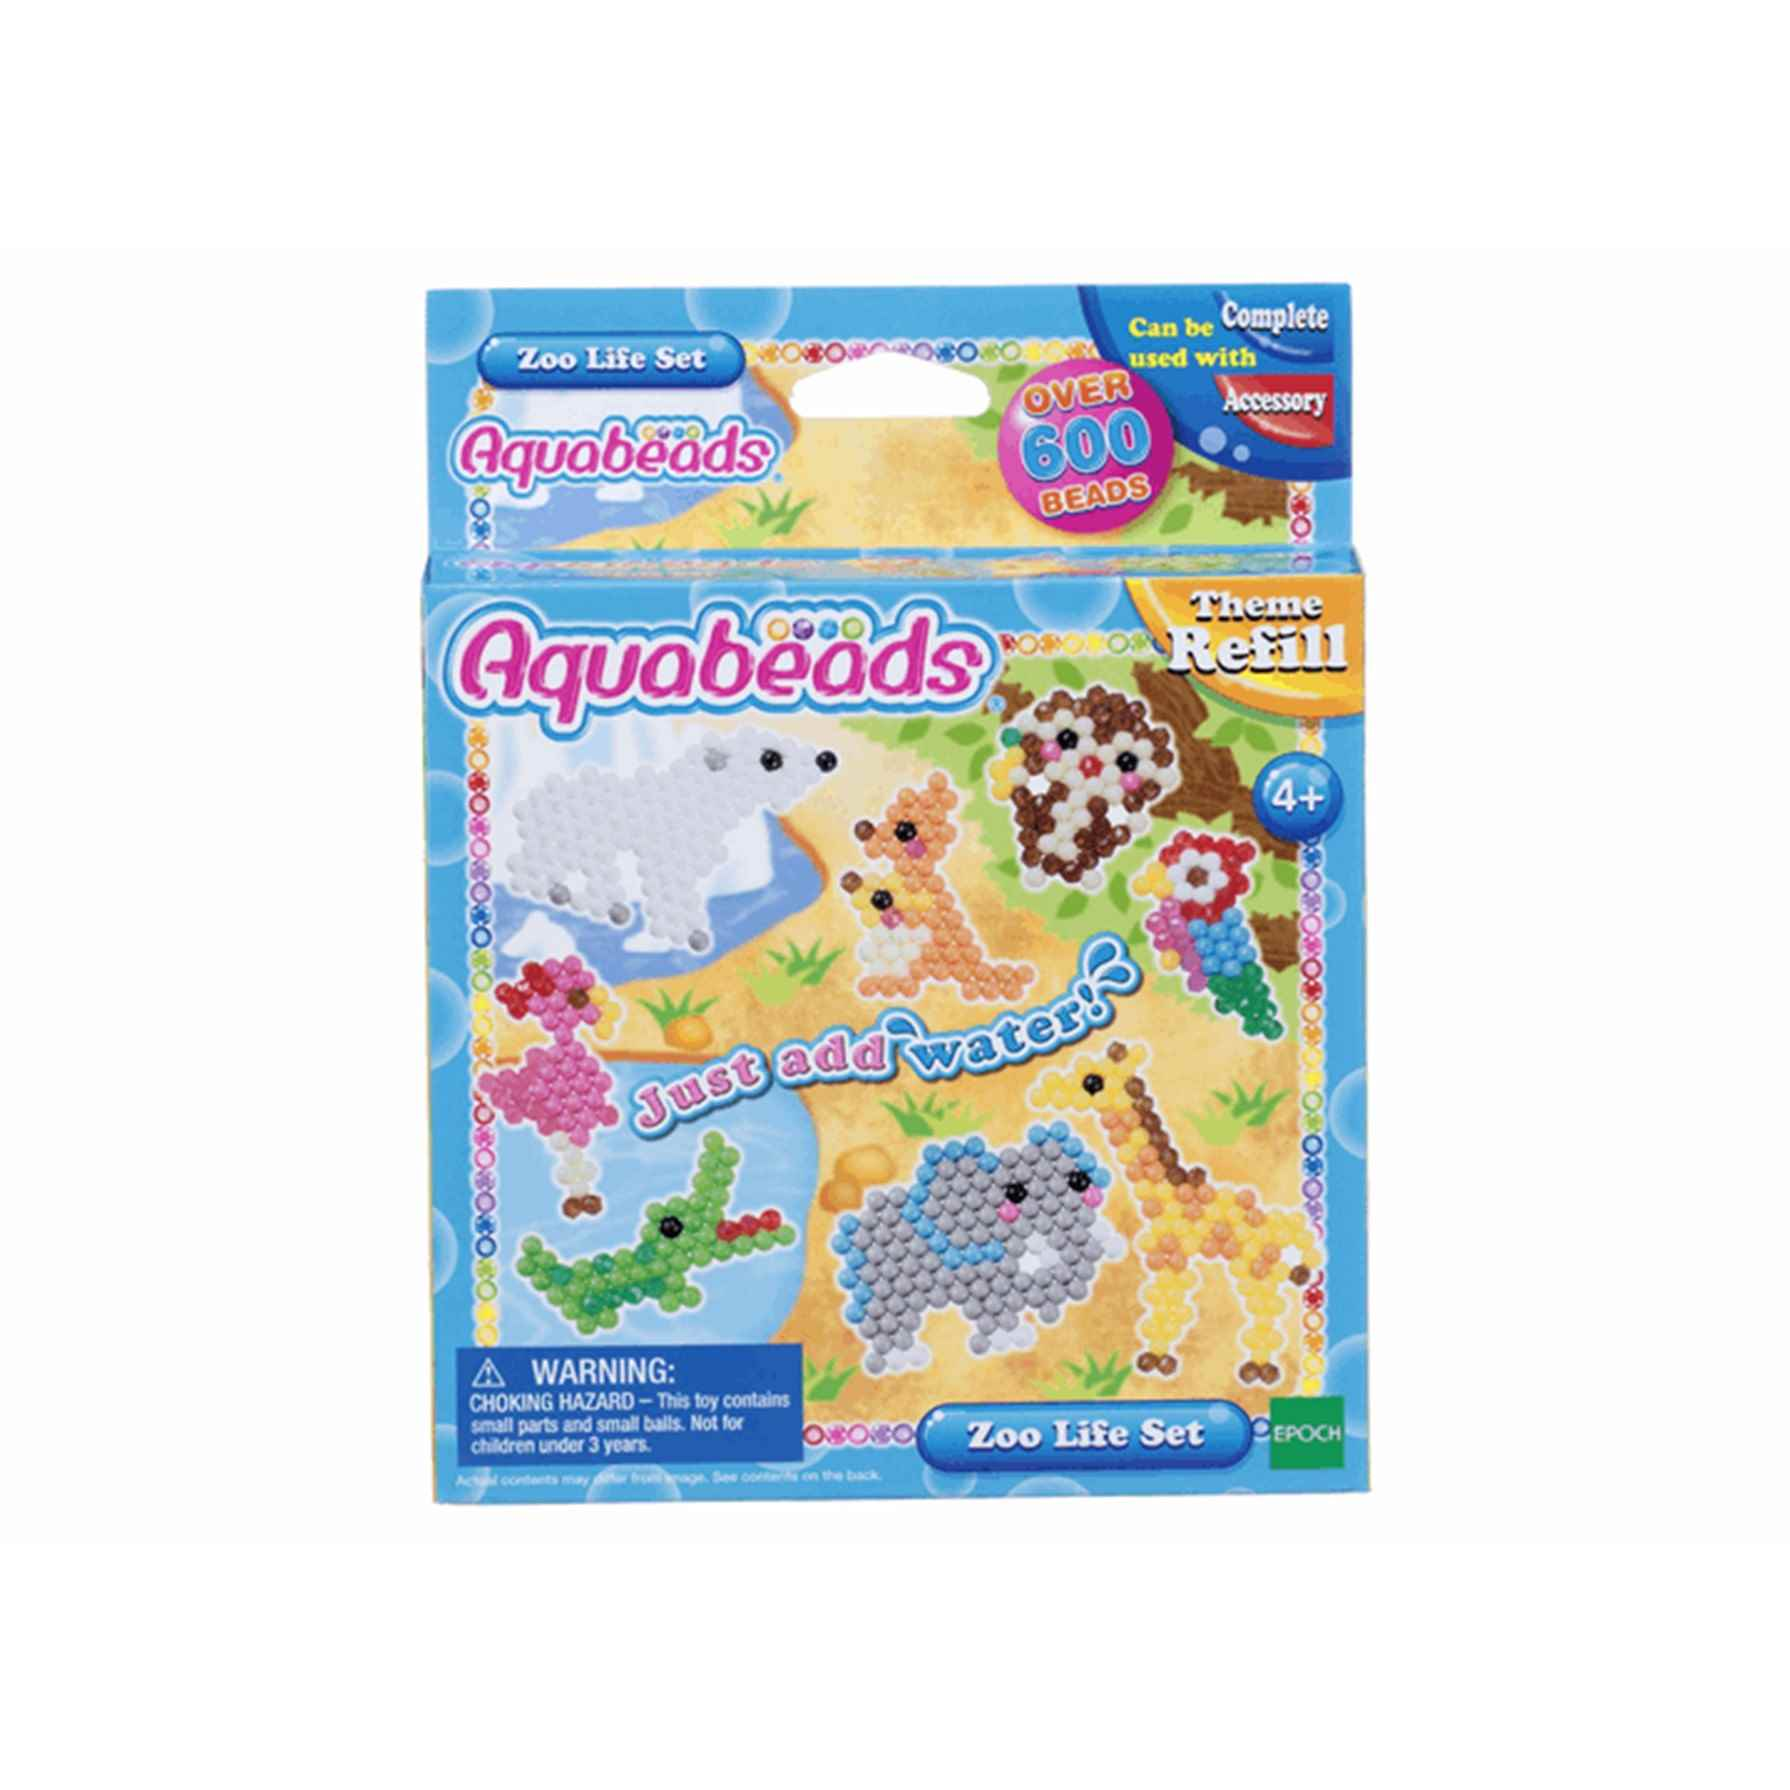 Aquabeads Set del Zoo